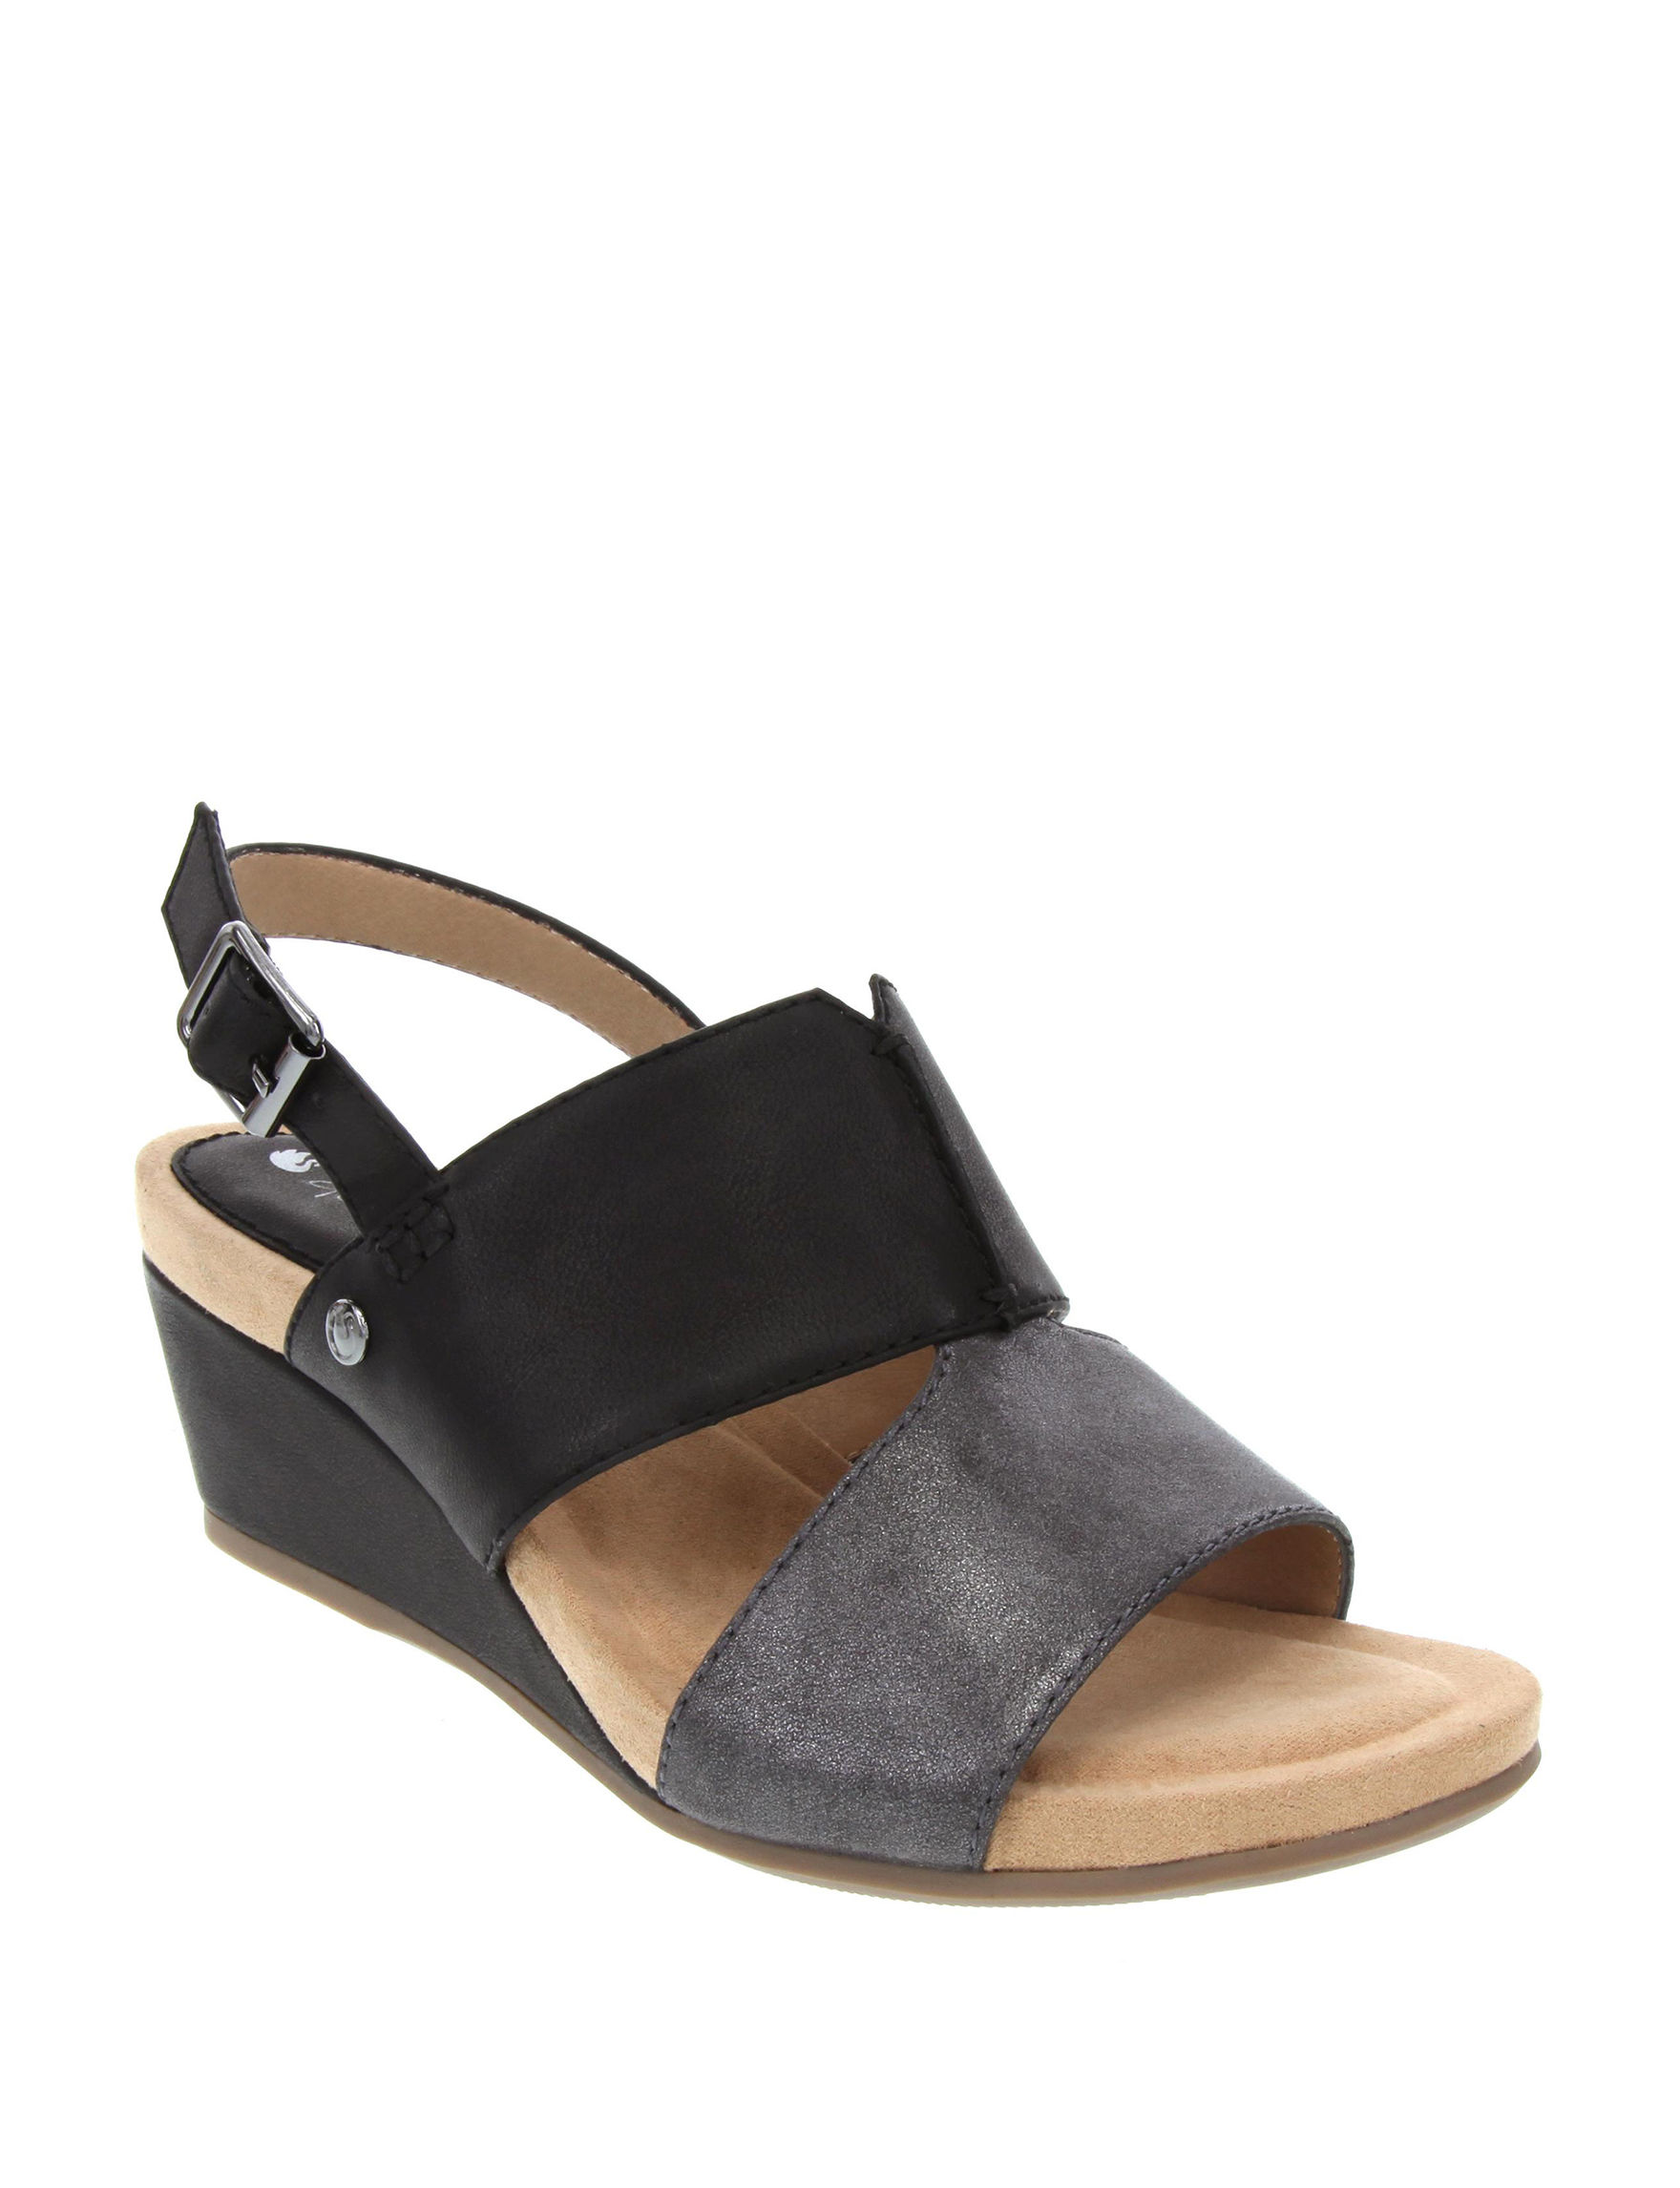 Gloria Vanderbilt Black Wedge Sandals